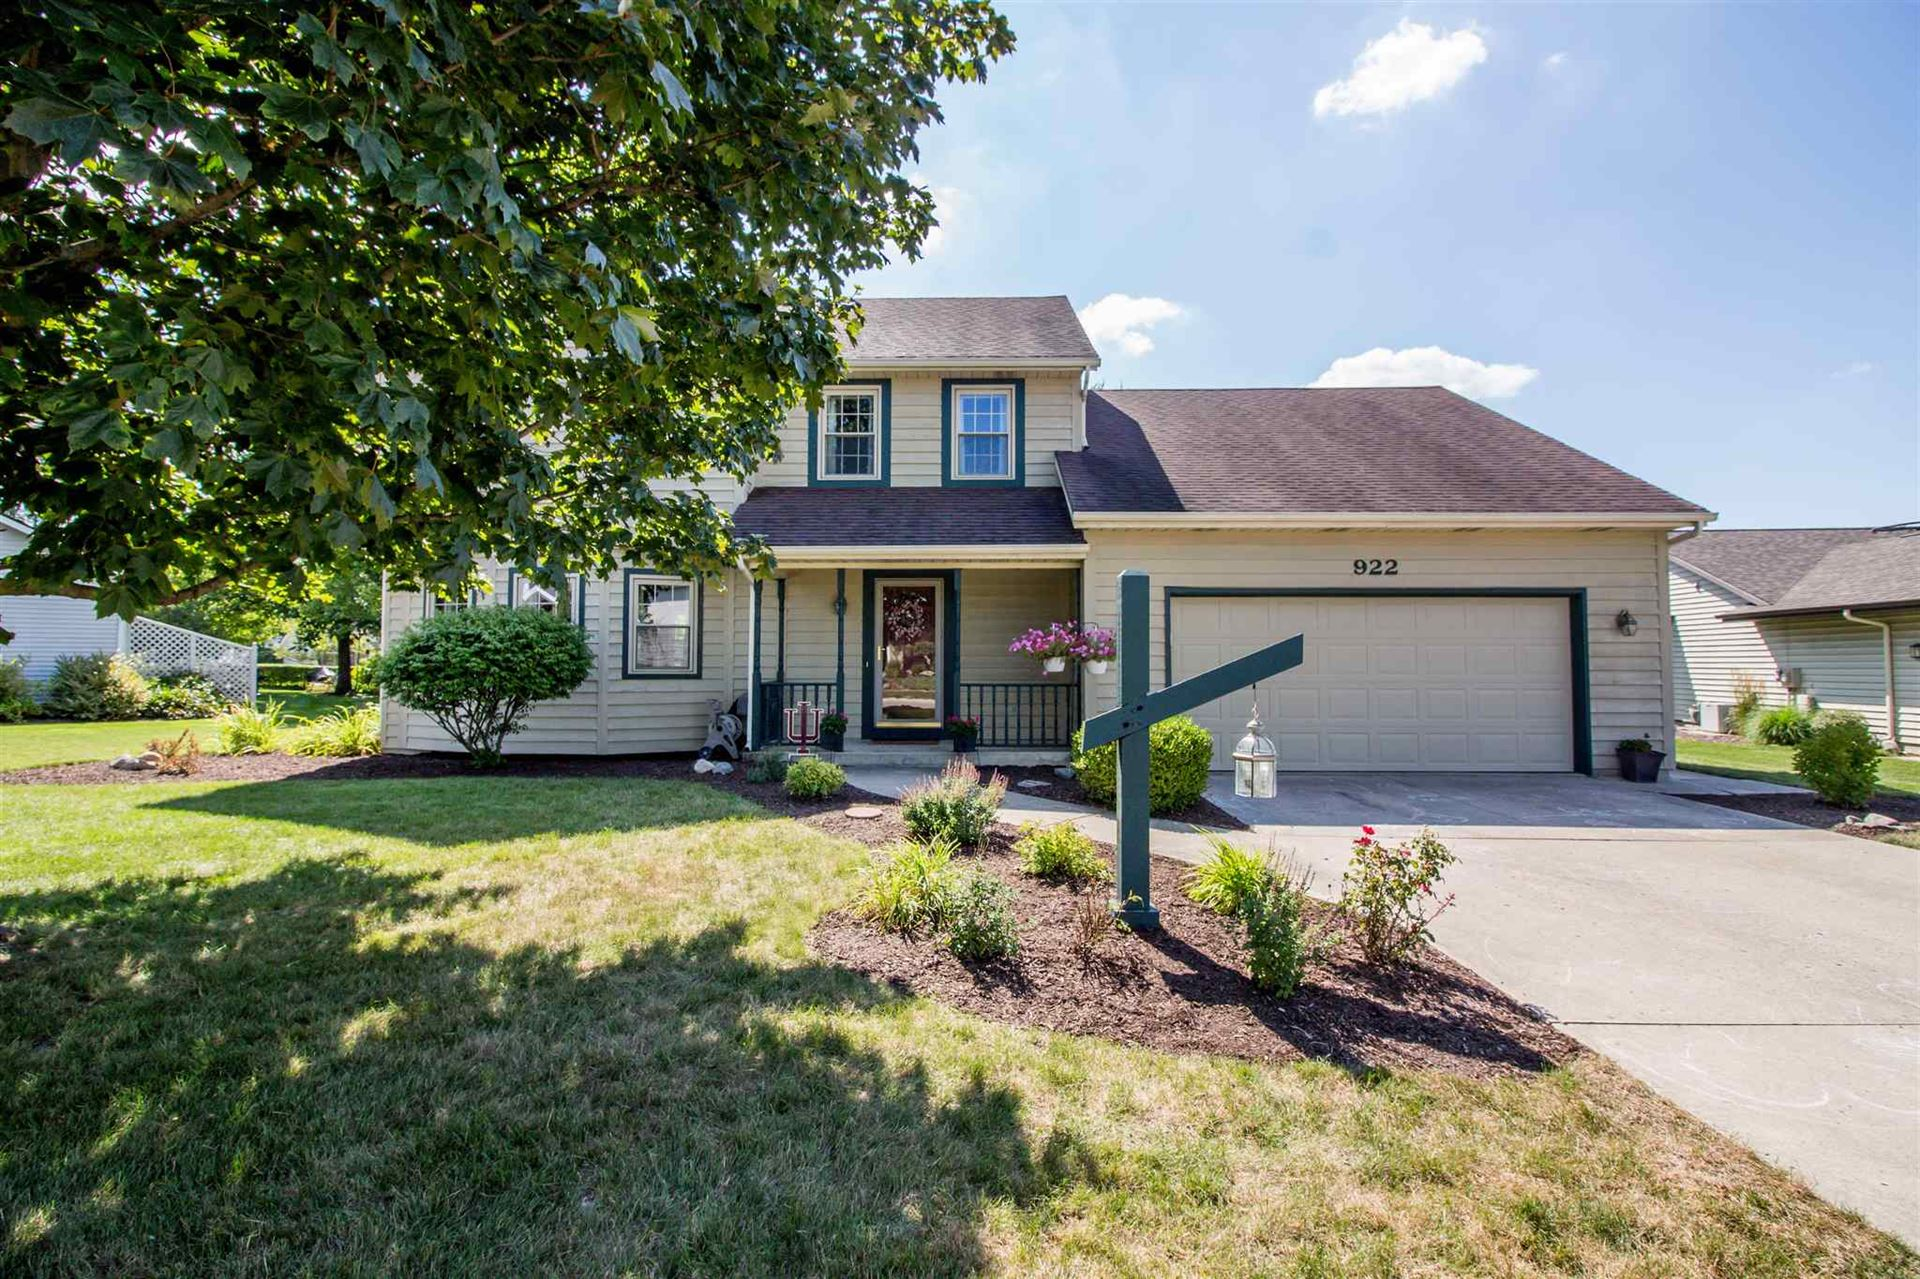 922 Willowind Trail, Fort Wayne, IN 46845 - #: 202031168